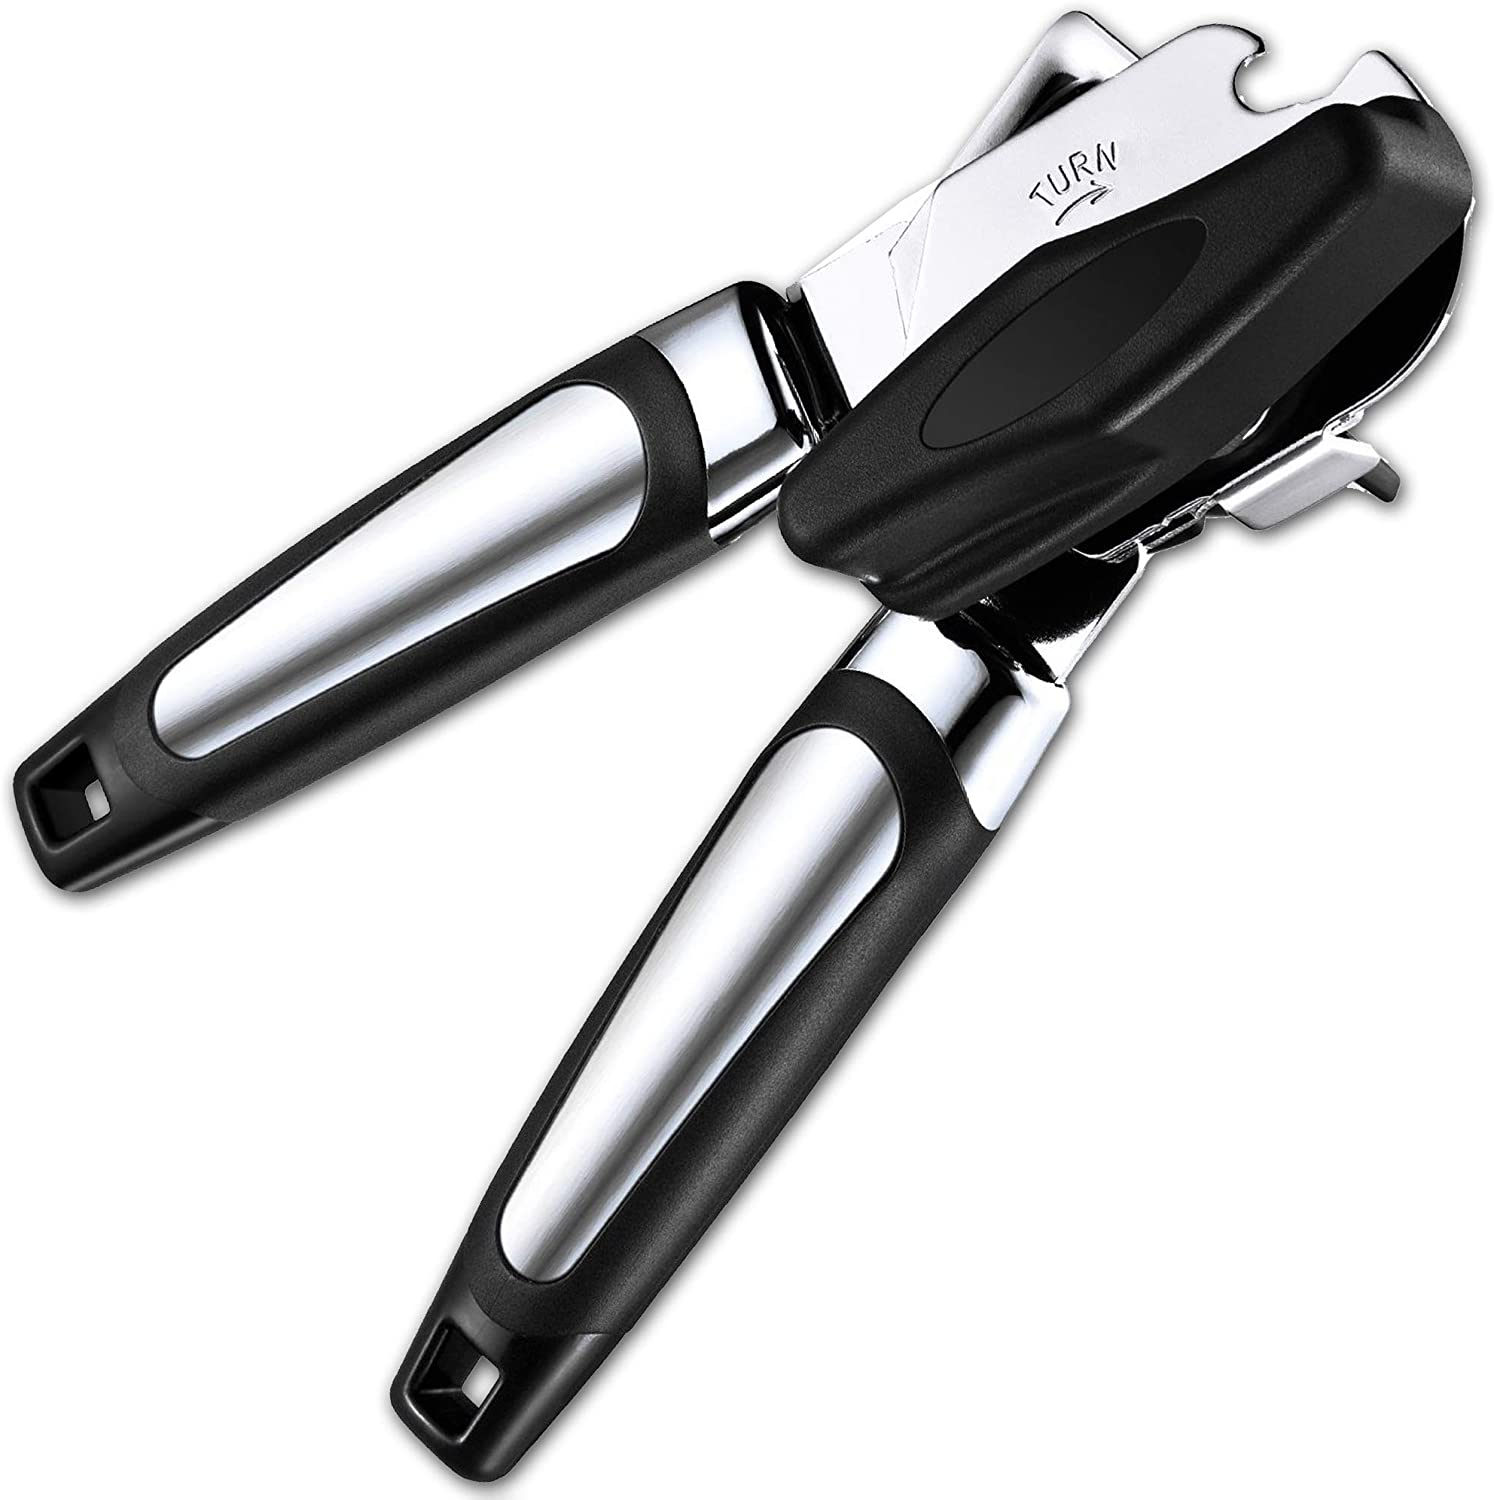 Can Opener Strongest Heaviest Duty, Best Jar Opener & Tin Opener, Manual Good Grips Anti-slip Hand Grip, Stainless Steel Sharp Blade, Ergonomic and Easy to Use, with Large Turn Knob